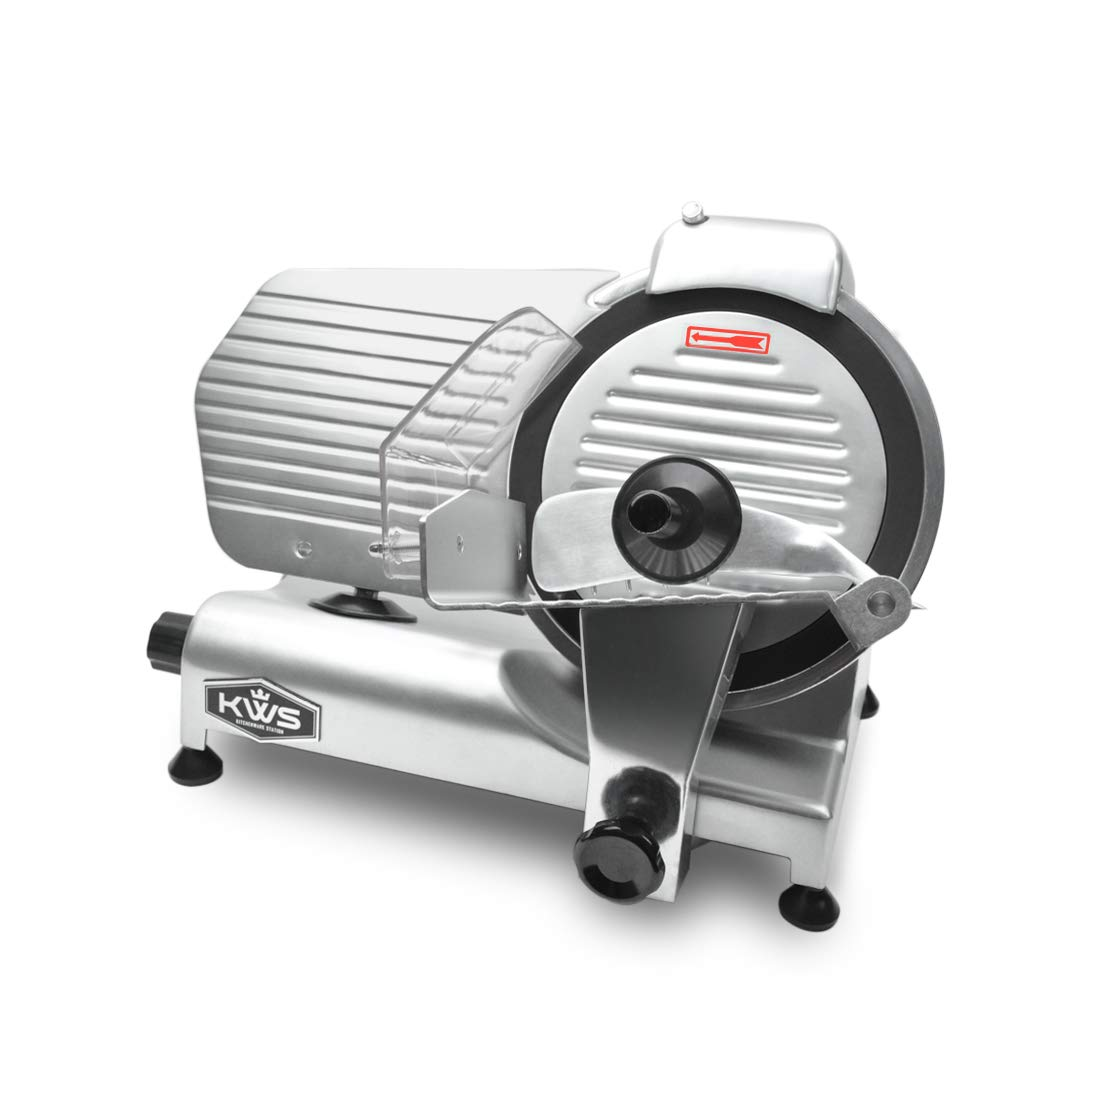 "KWS Premium Commercial 320w Electric Meat Slicer 10"" with Non-sticky Teflon Blade, Frozen Meat/Cheese/Food Slicer Low Noises Commercial and Home Use"